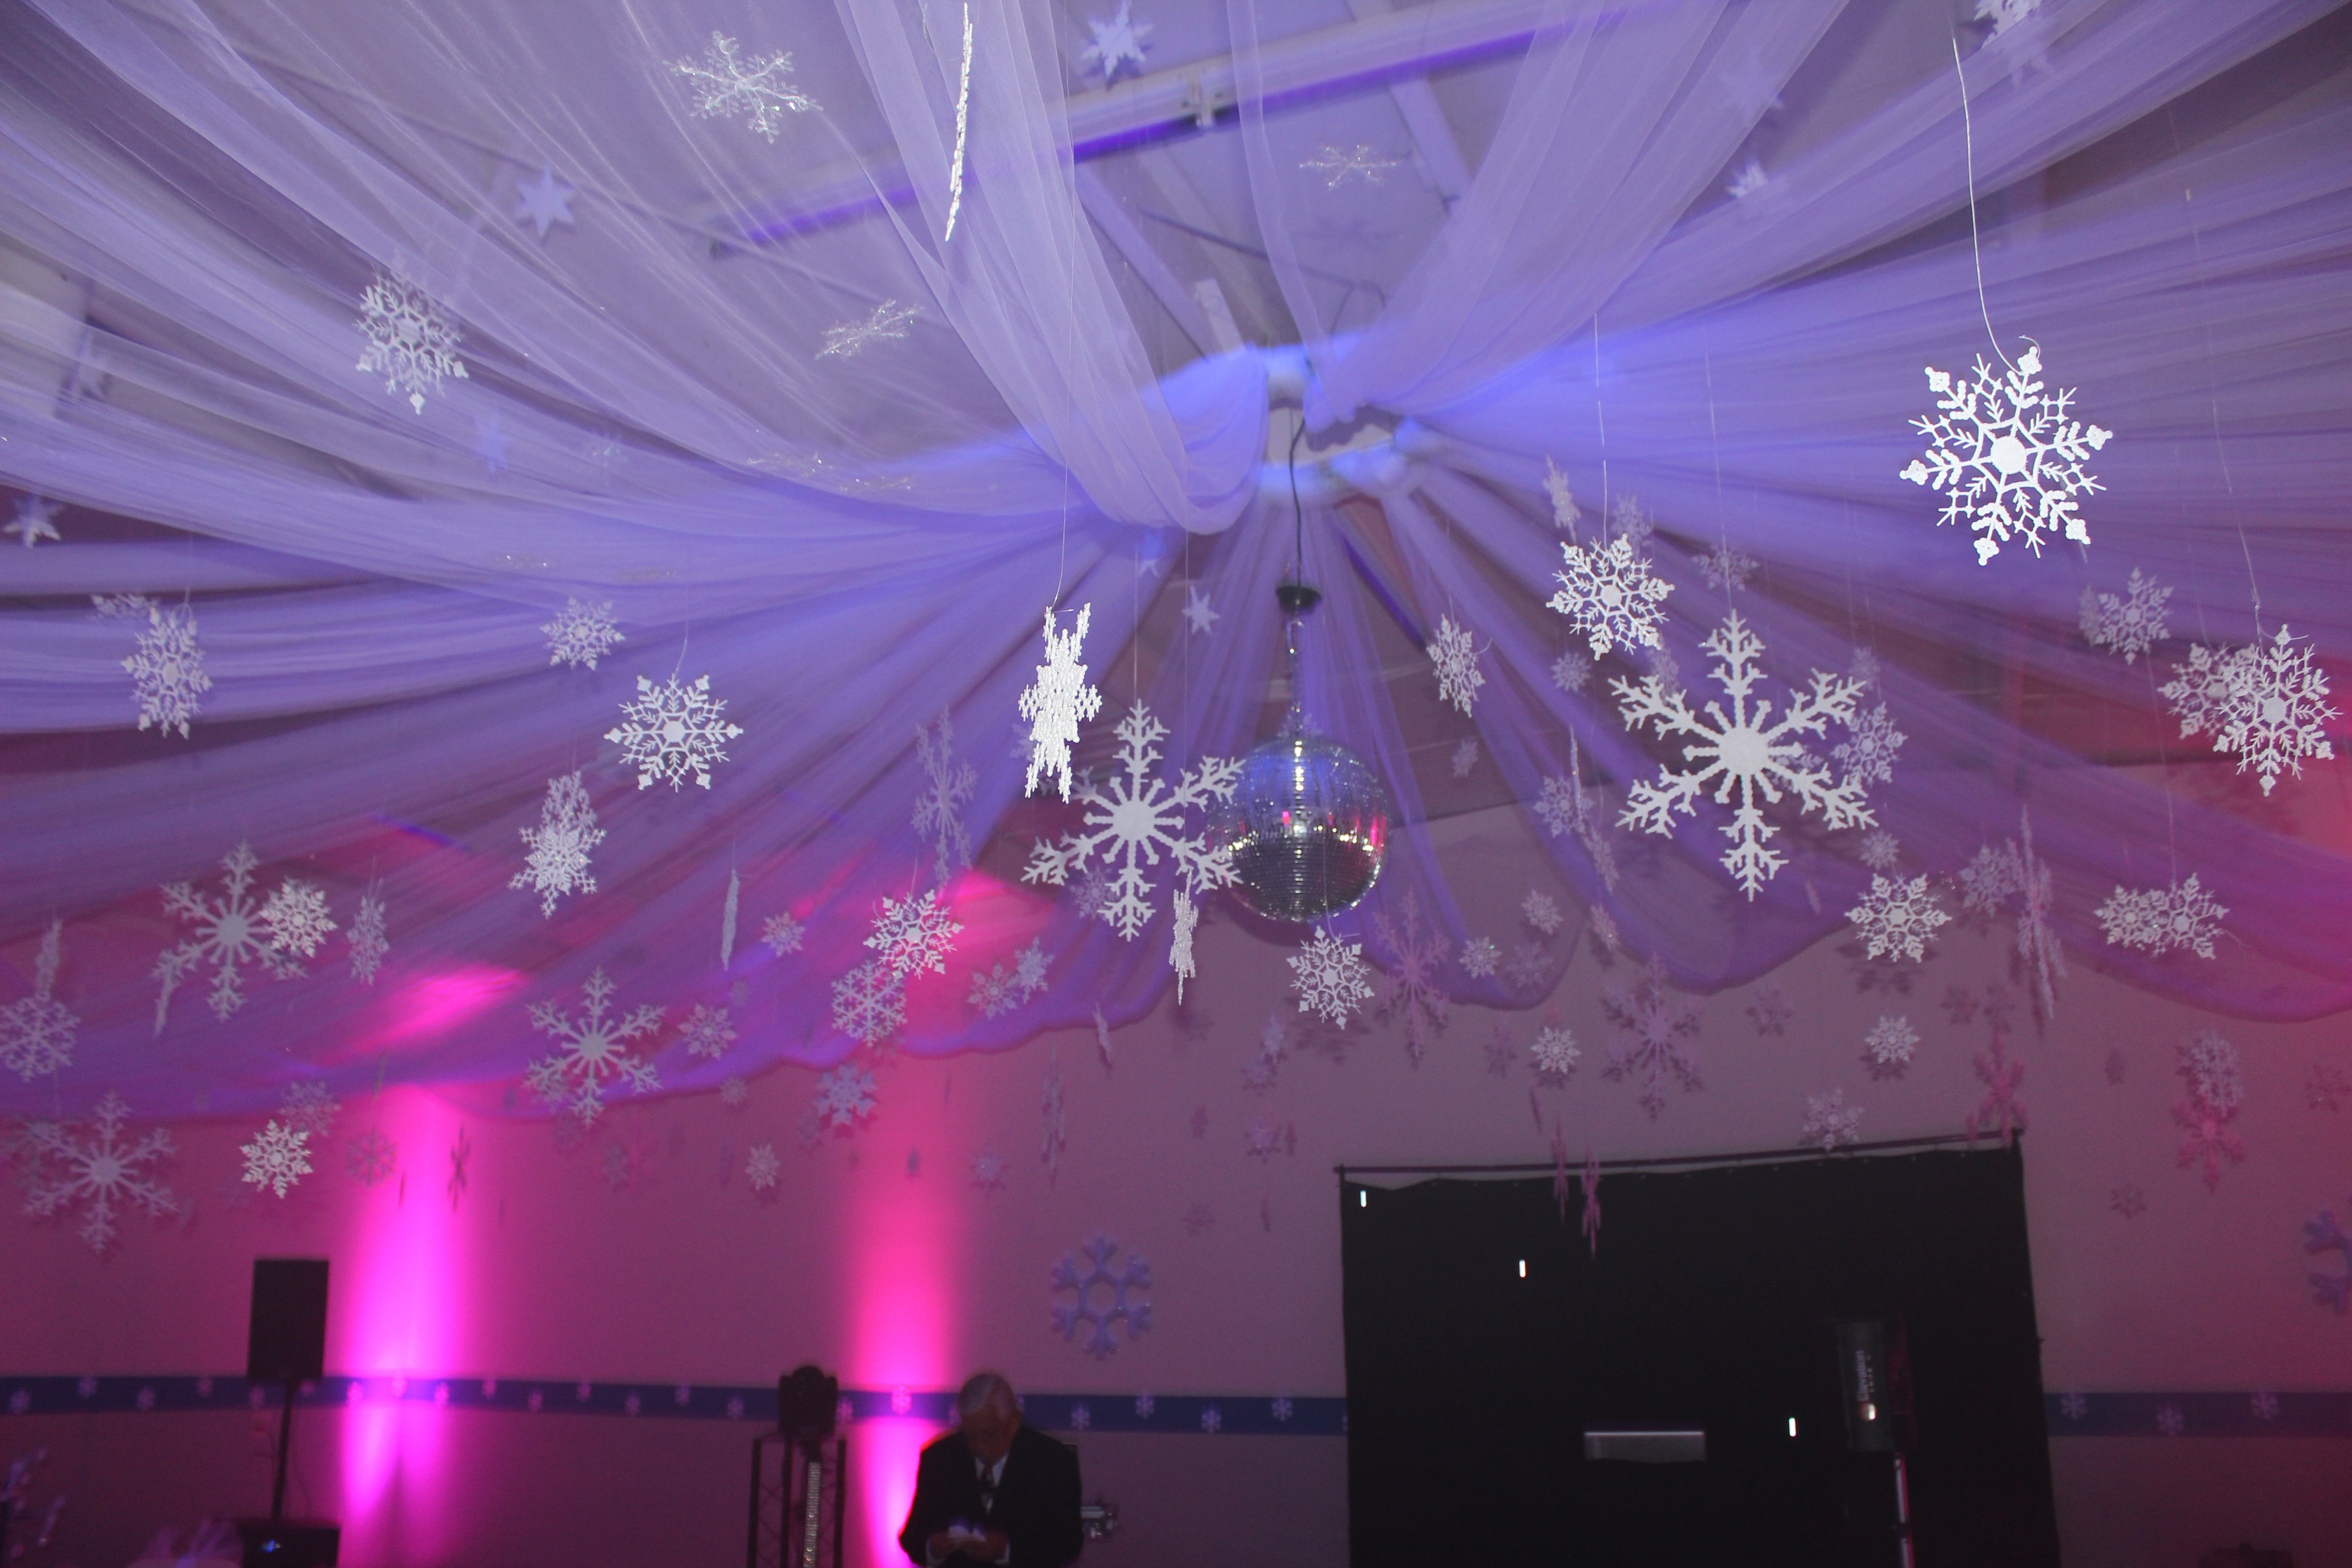 10 Cute Sweet 16 Ideas For Winter winter wonderland sweet 16 birthday party britts sweet 16 birthday 2020